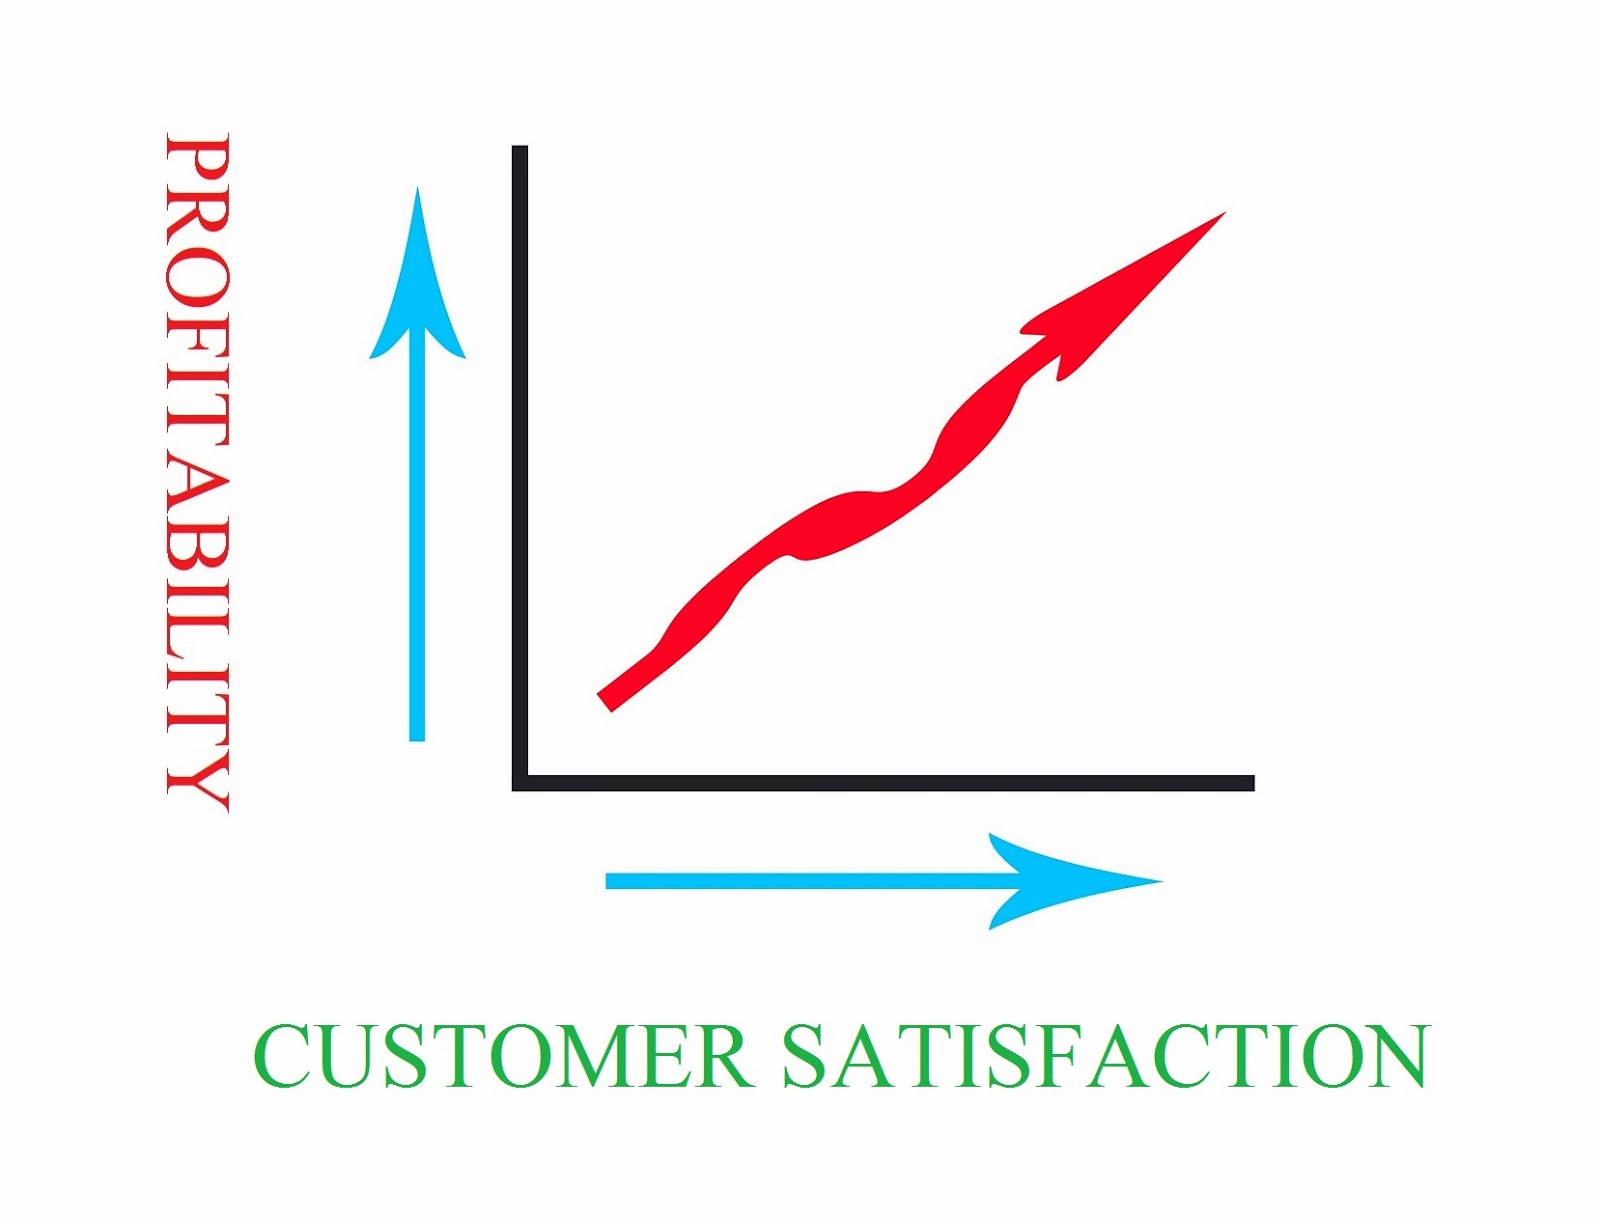 1. Overall Satisfaction Measure (Attitudinal)